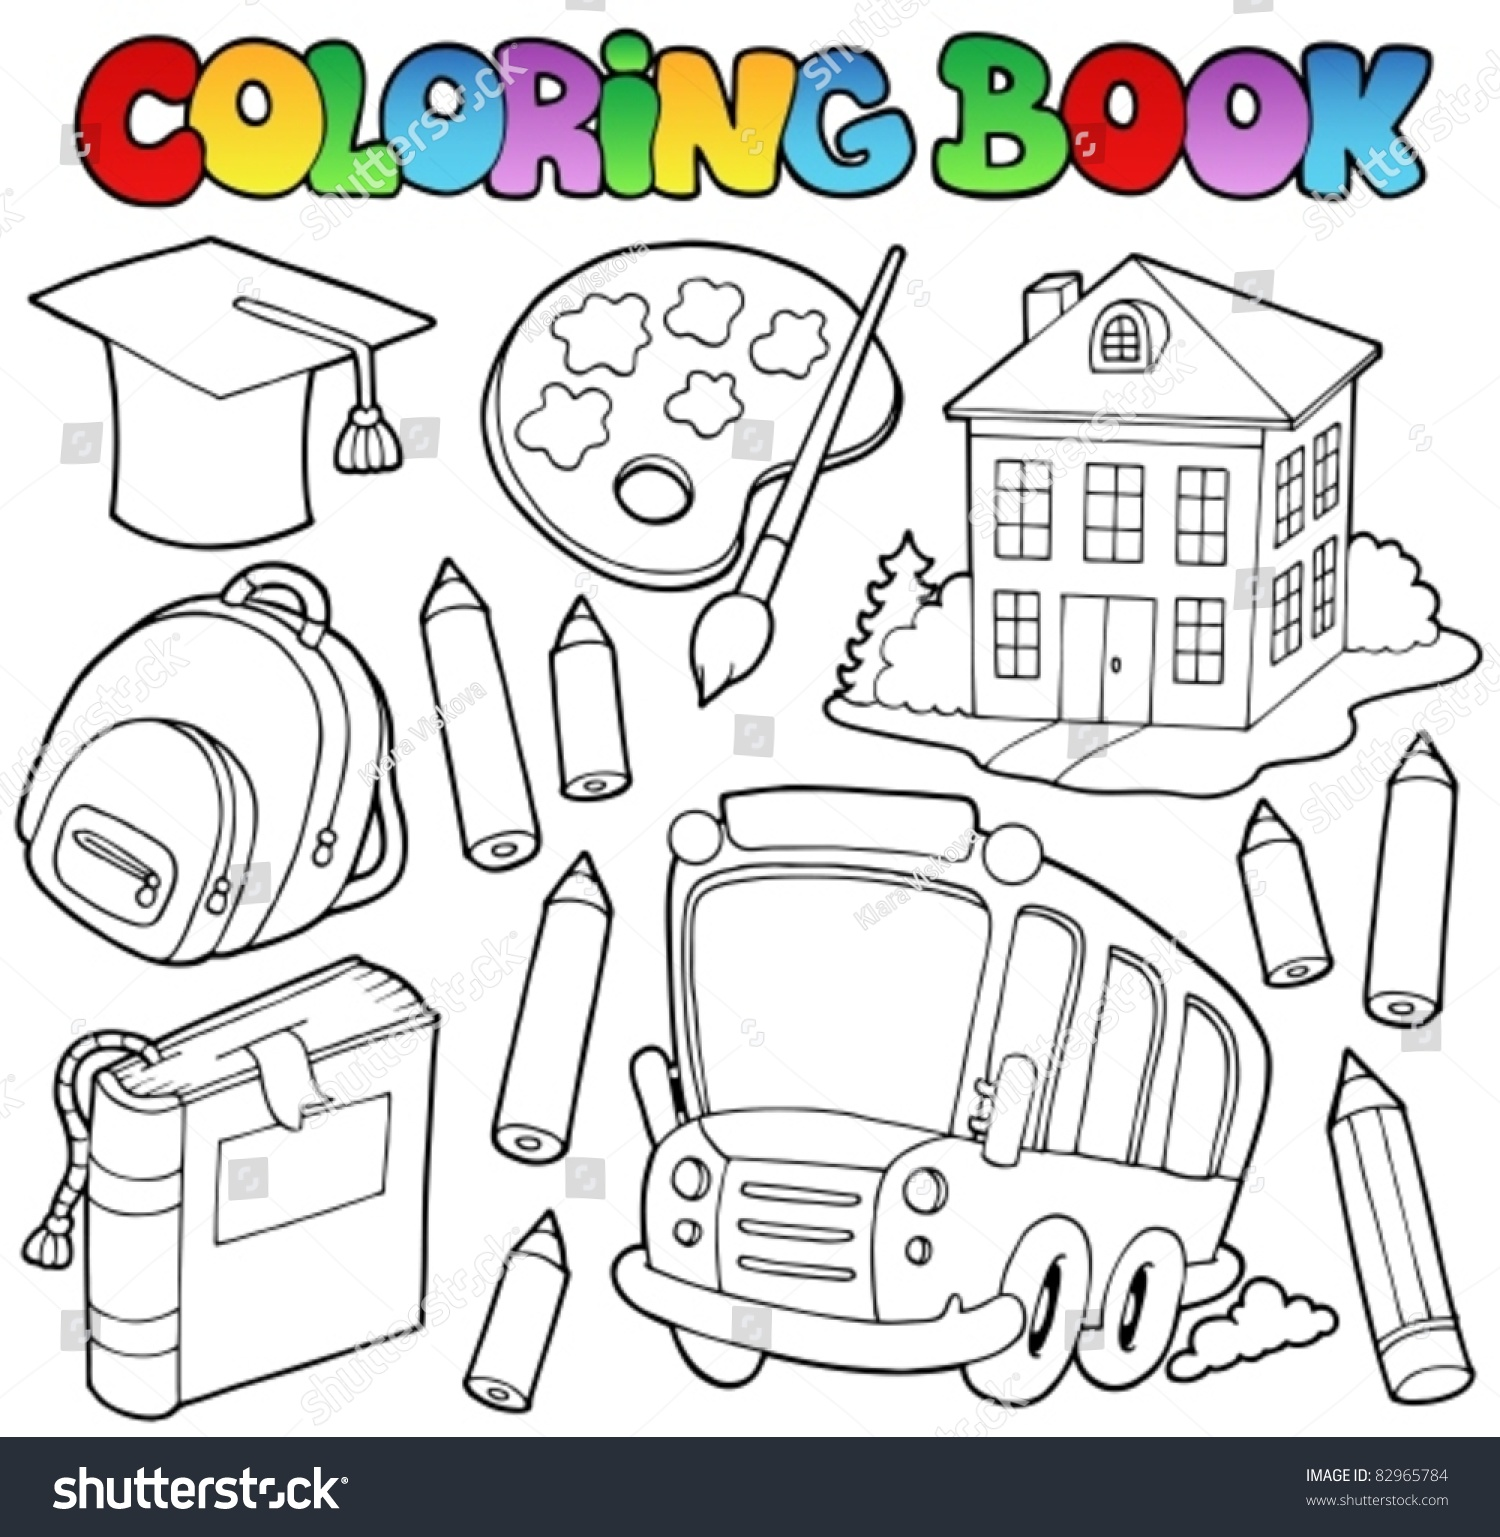 Coloring book school - Coloring Book School Cartoons 9 Vector Illustration